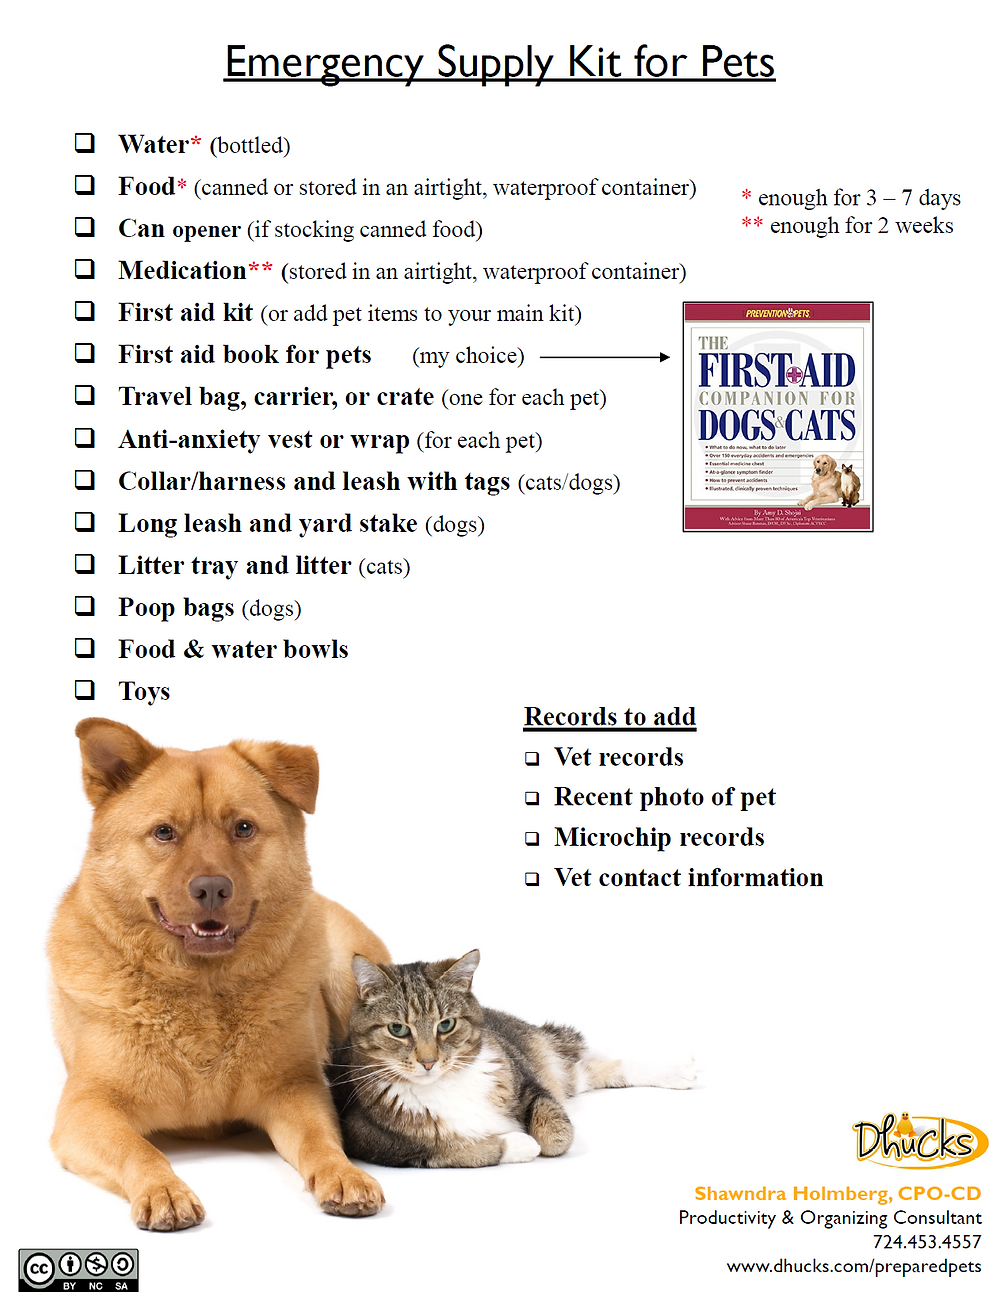 Use promo code FREE to download a copy of  the Emergency Supply Kit list for Pets